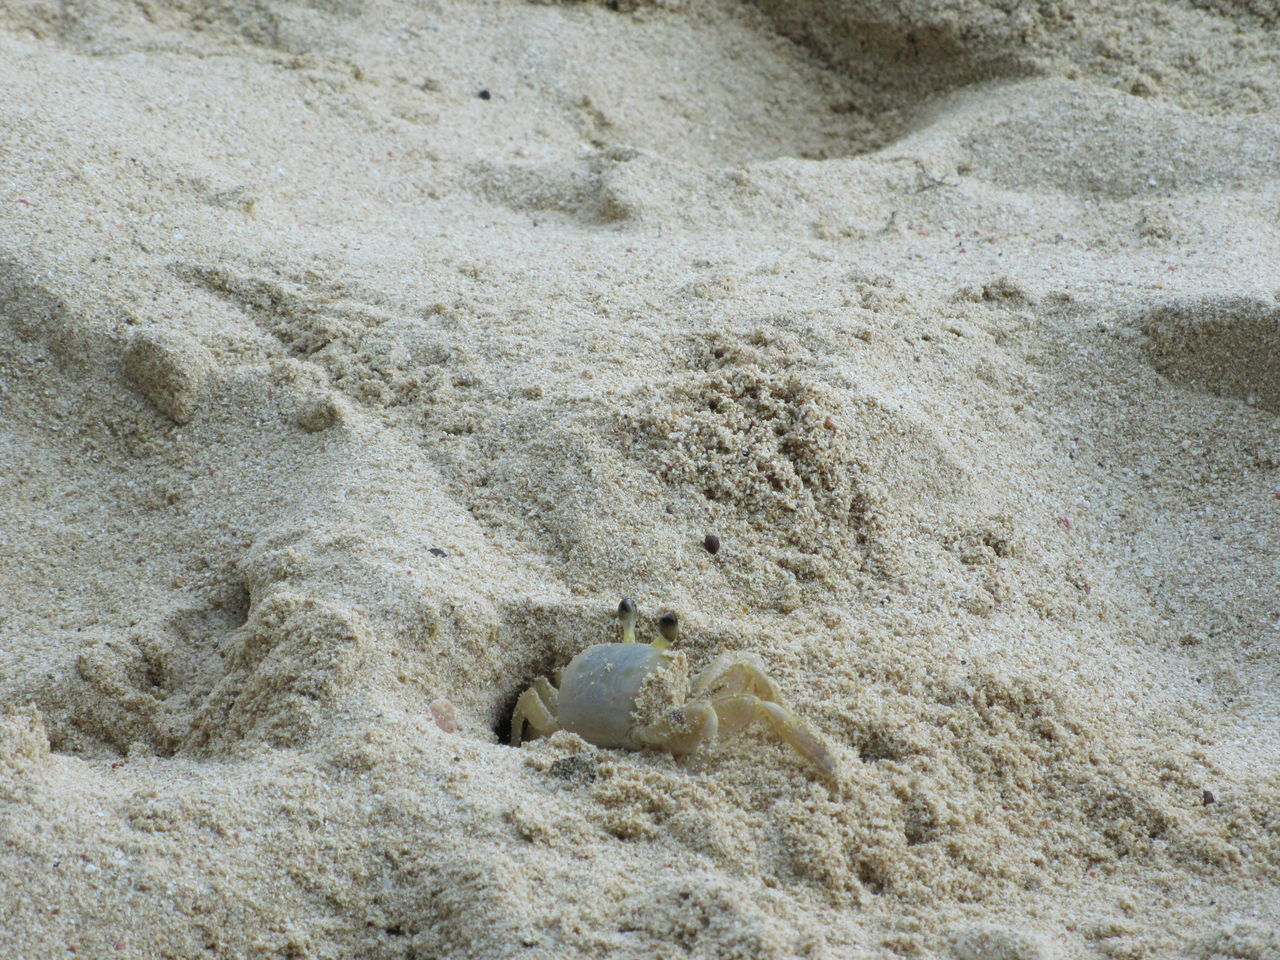 Animal Themes Animal Wildlife Animals In The Wild Crab Nature No People One Animal Outdoors Sand Sea Life